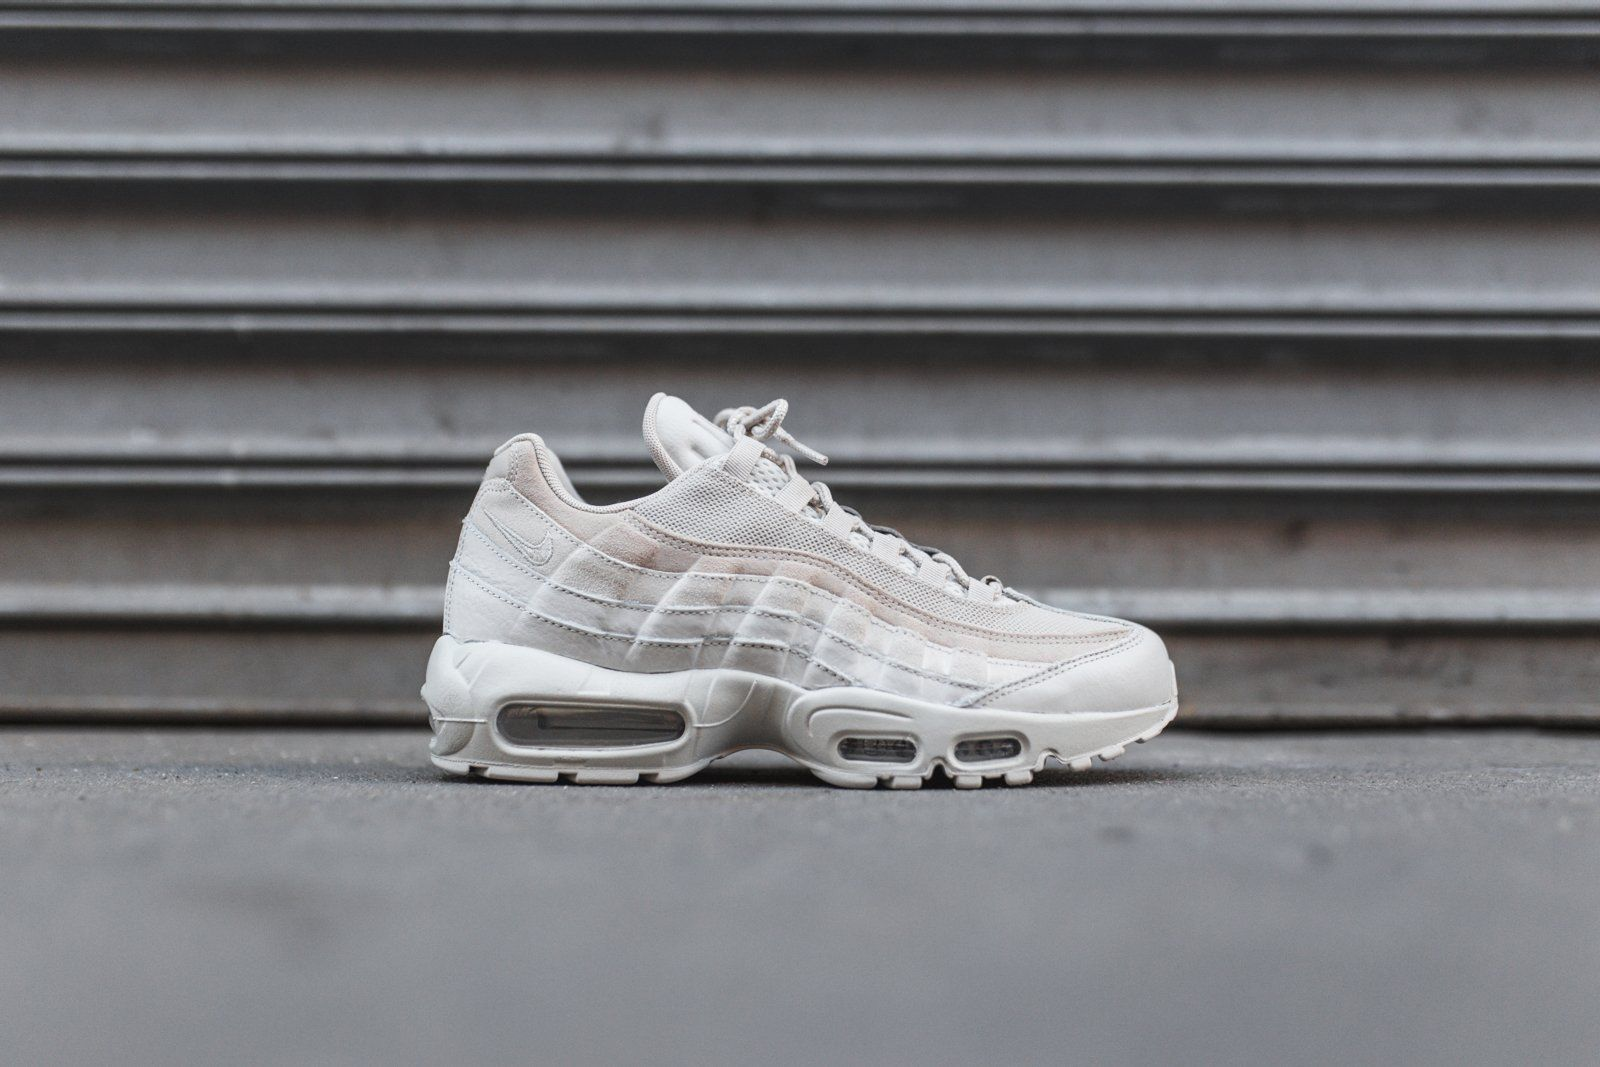 Donna Wmns Air Max 95 Prm CanteenCanteen Light Bone Black | Sneakers Nike